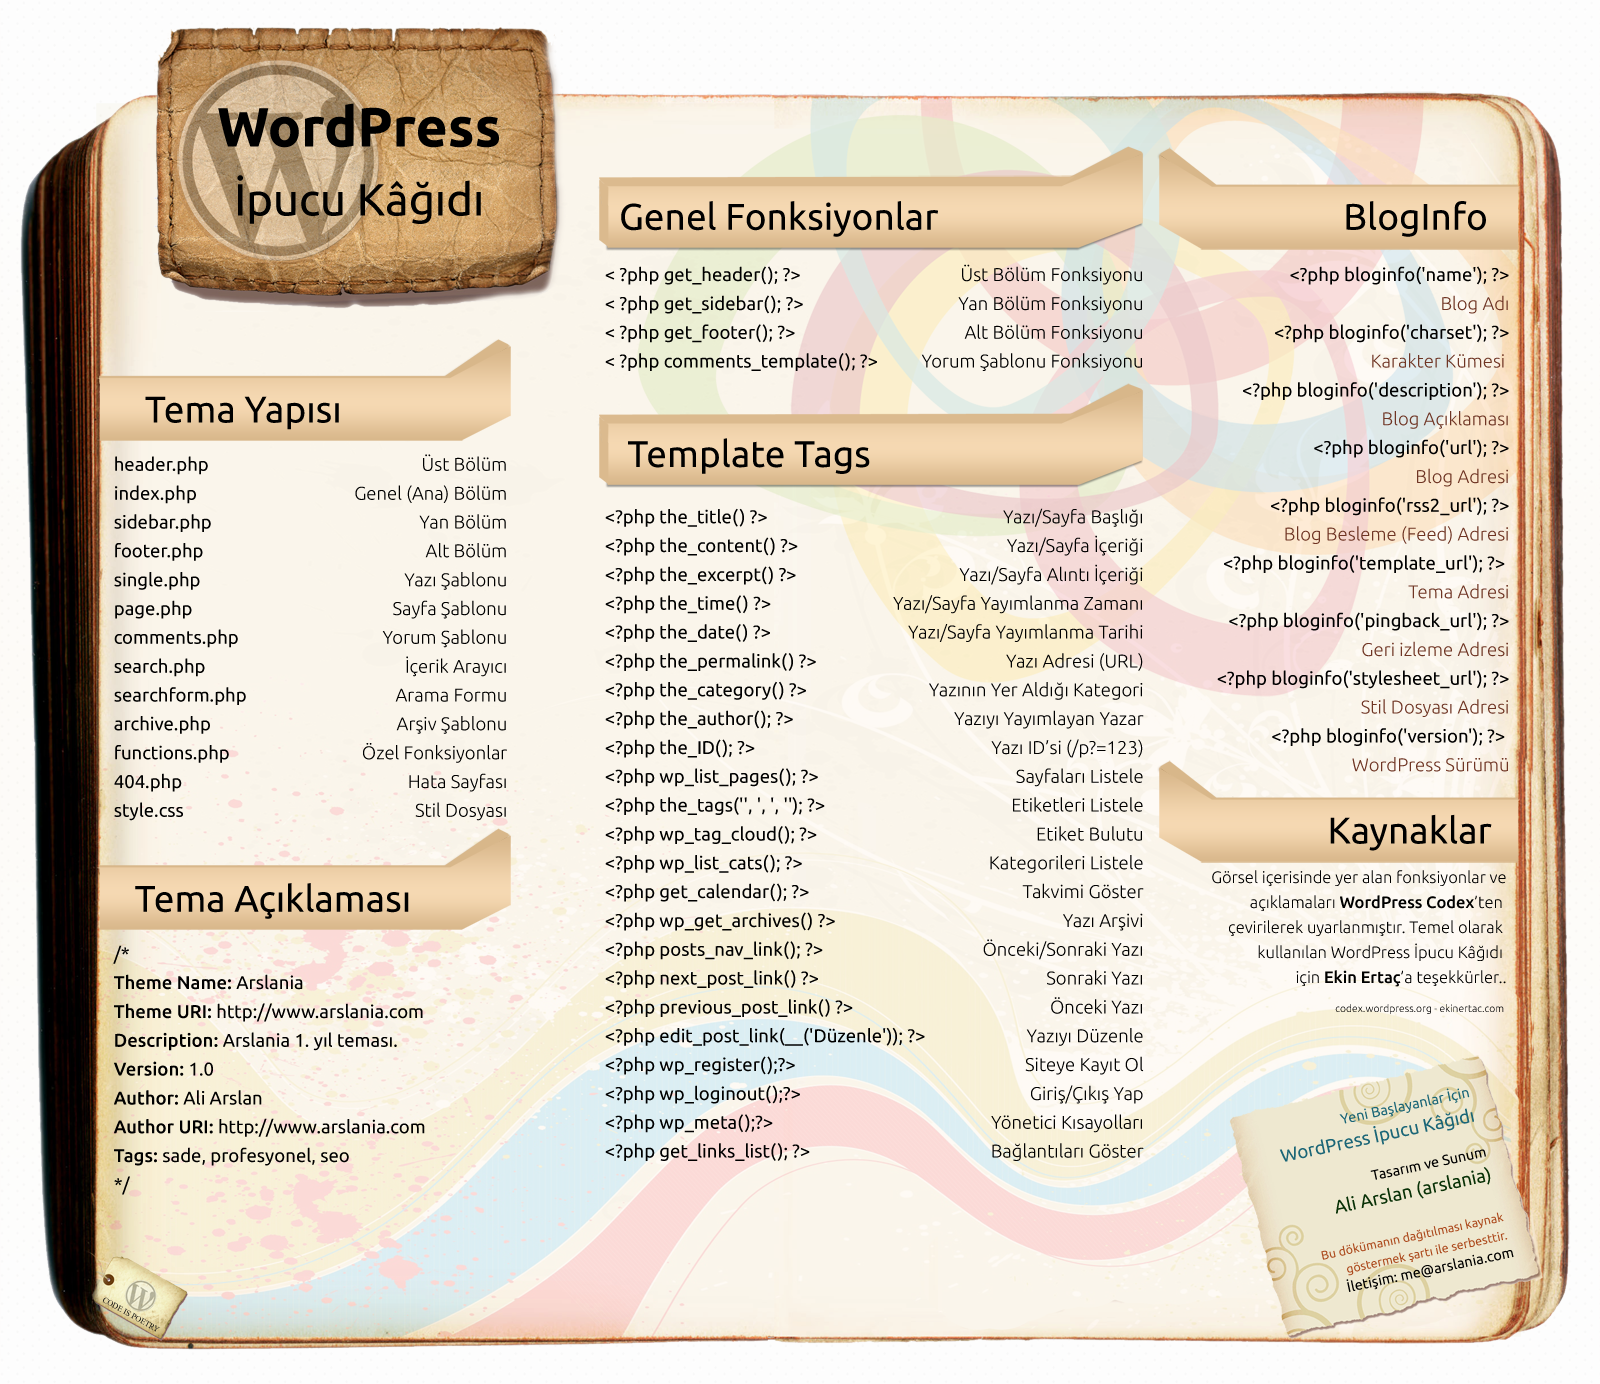 WordPress İpucu Kağıdı, Help Sheet, Cheat Sheet